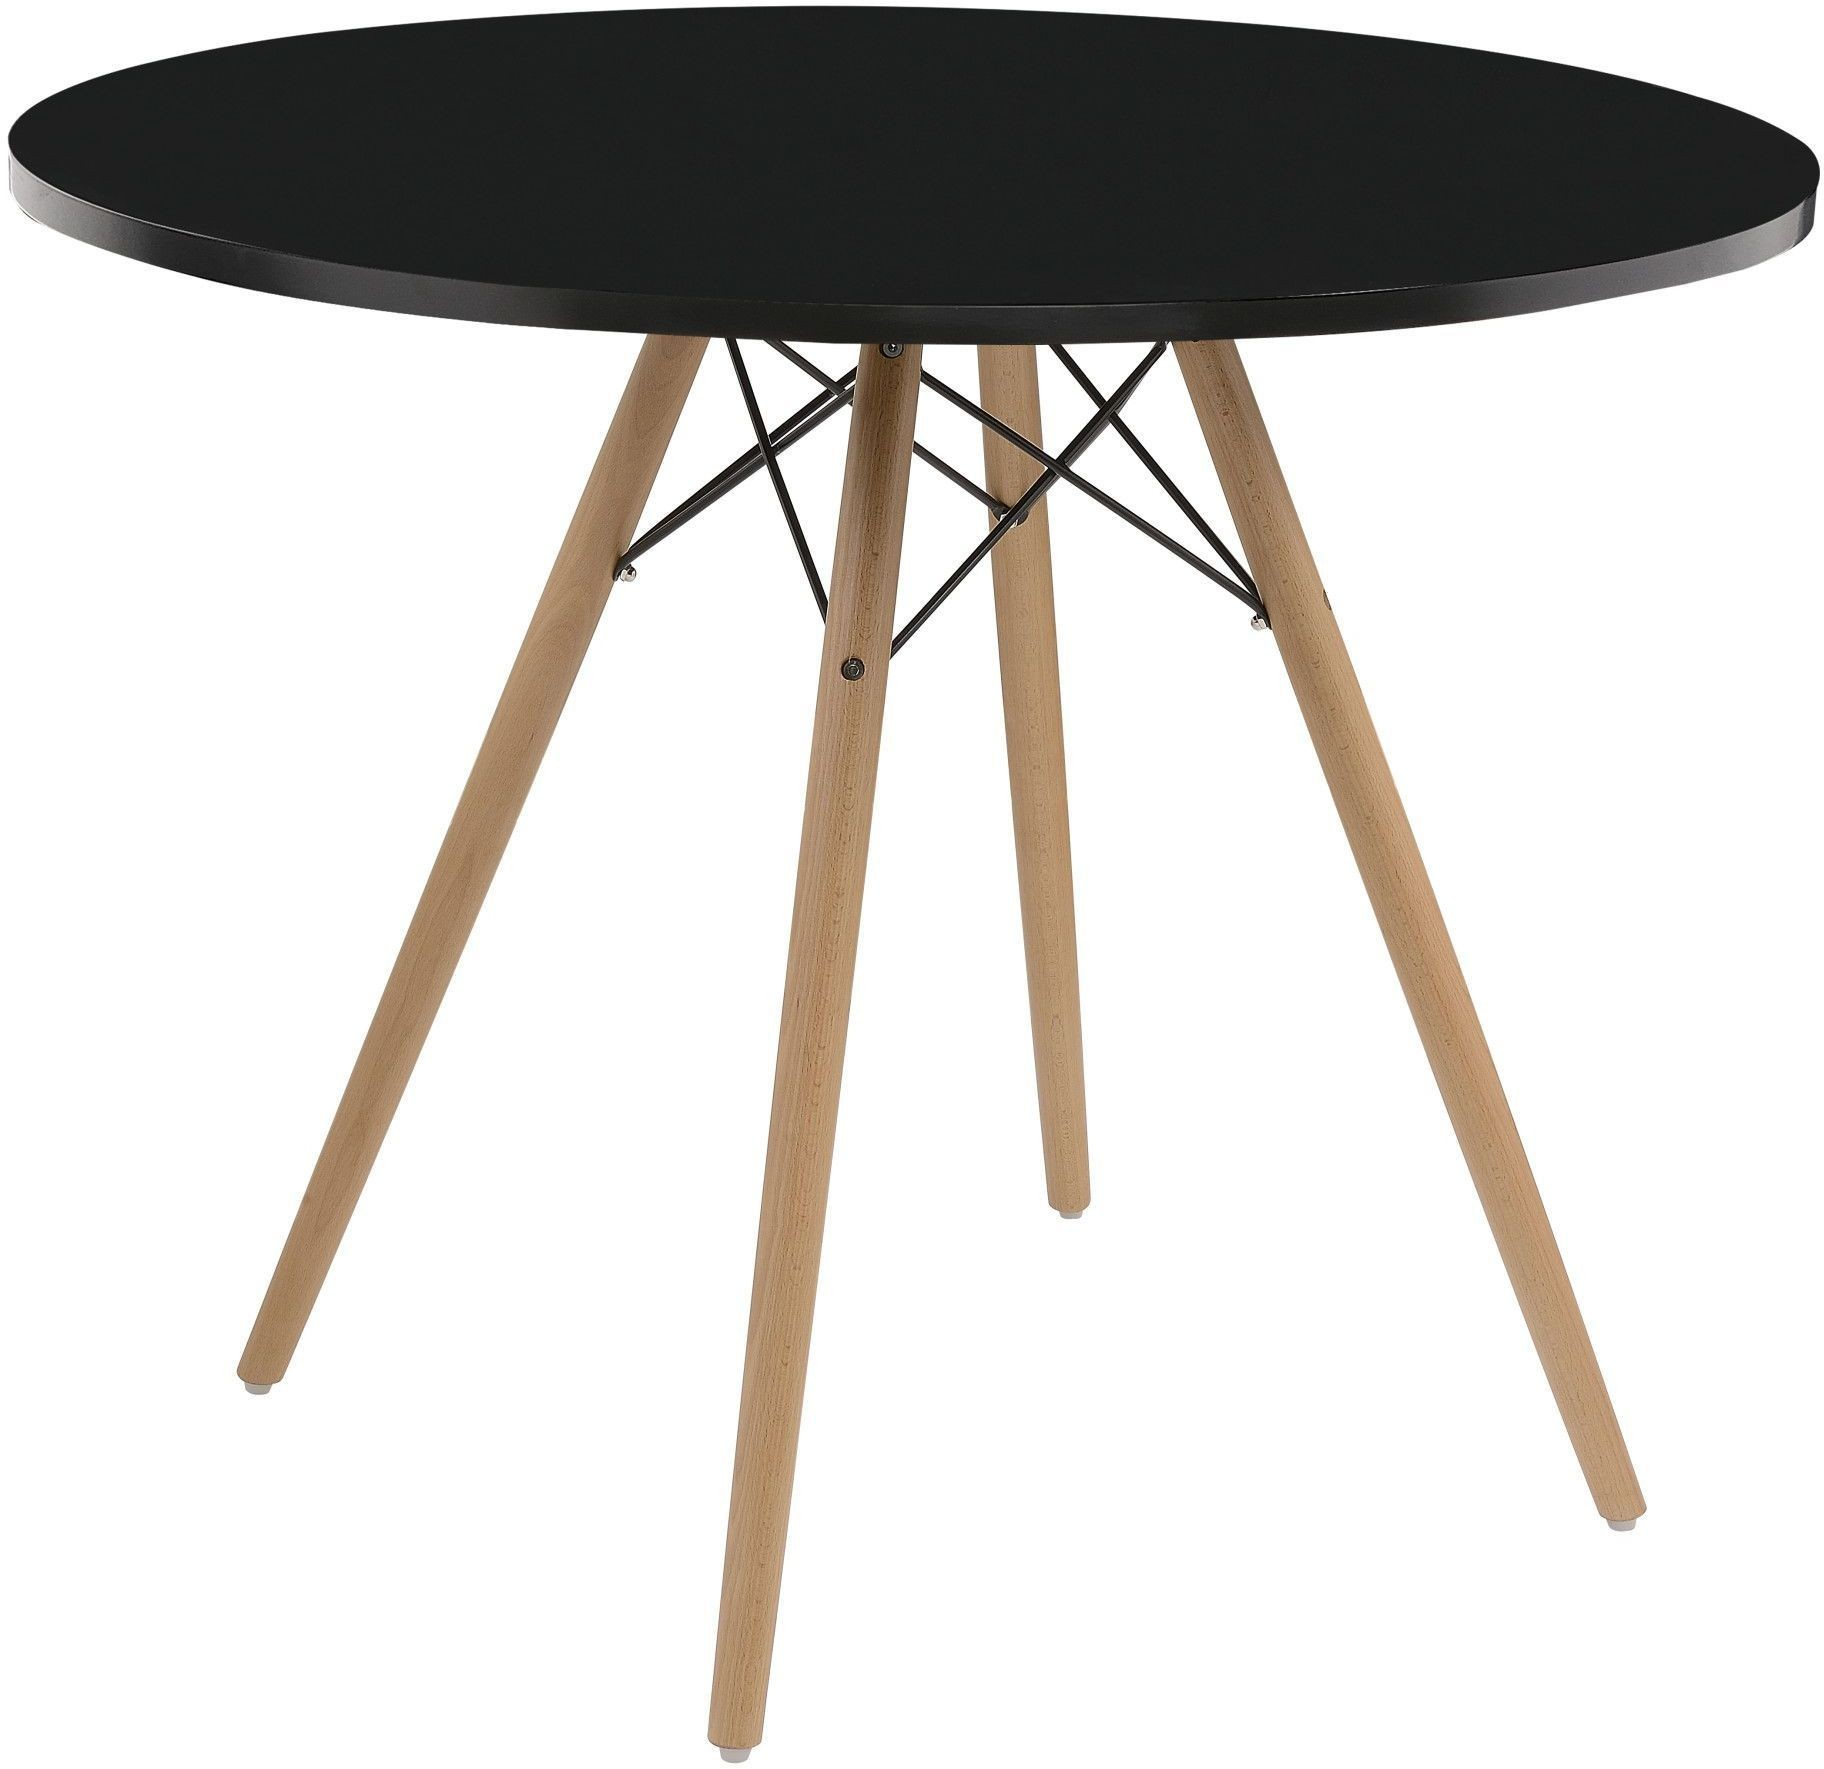 Annette black 40 round dining table from emerald home for Black round dining table